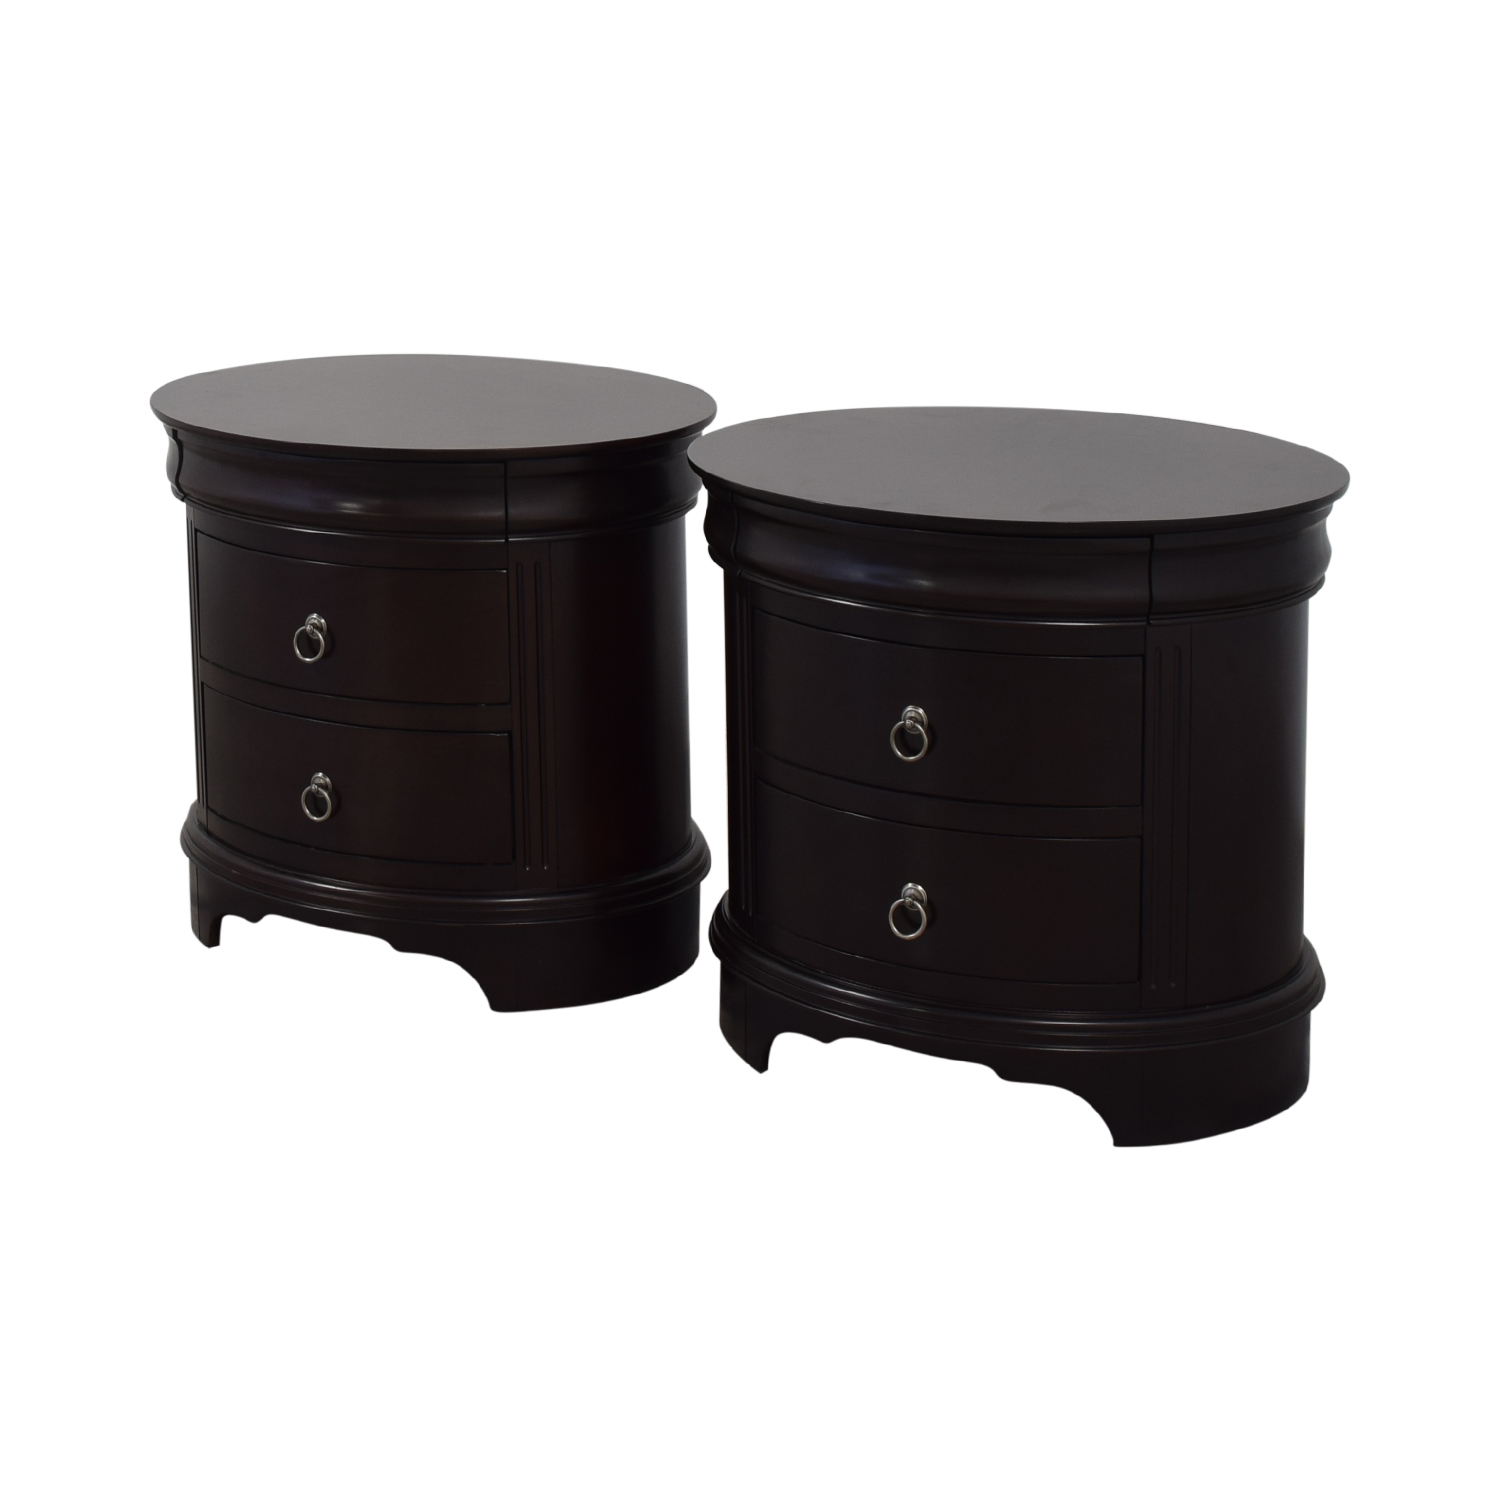 Winners Only Round End Tables with Drawers / End Tables